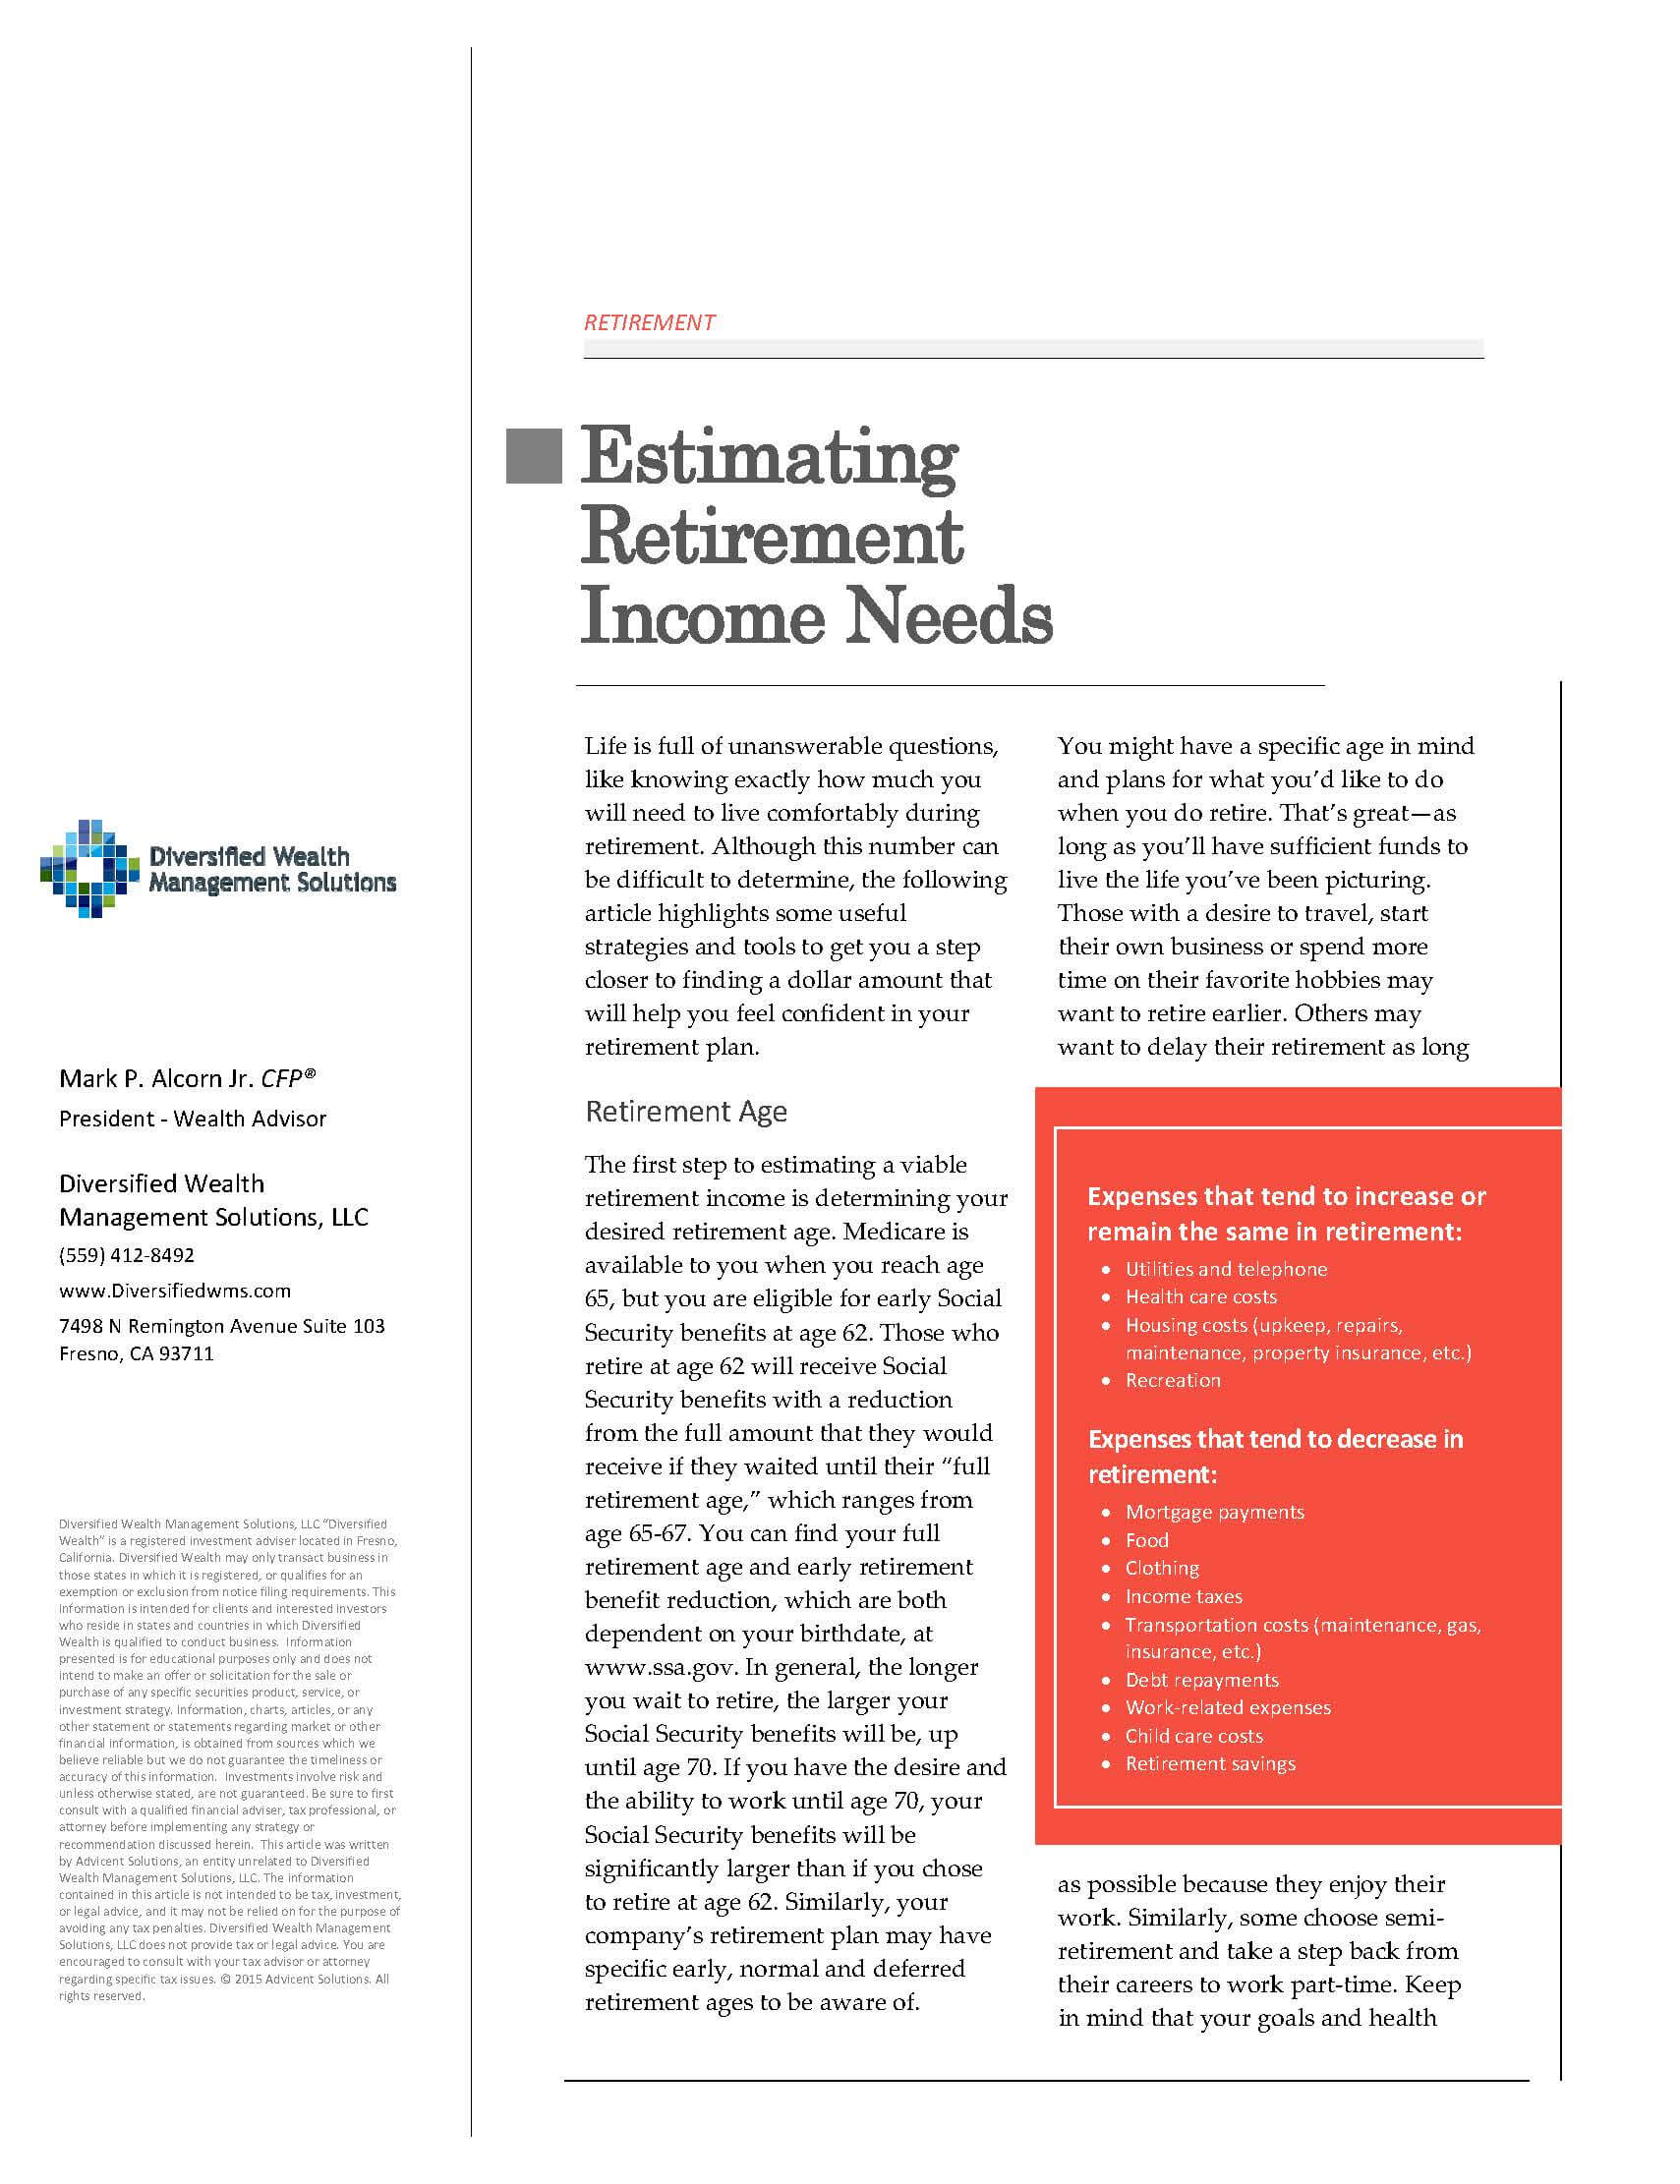 Estimating Retirement Income Needs   Diversified Wealth Management Solutions